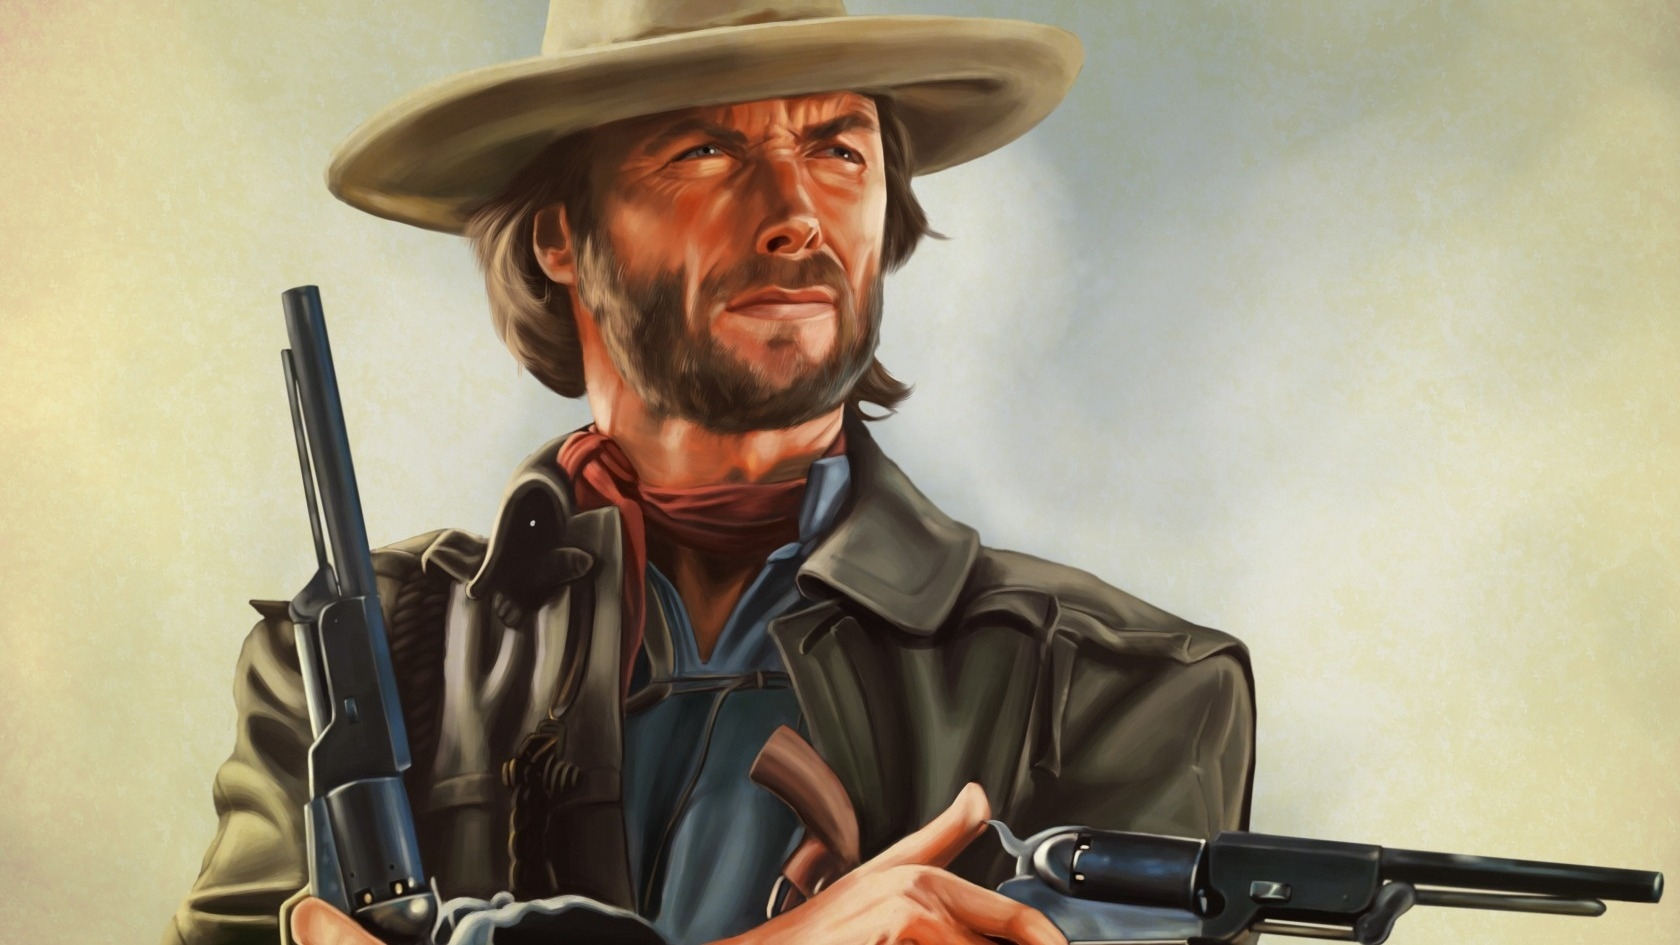 Clint Eastwood Artwork for 1680 x 945 HDTV resolution